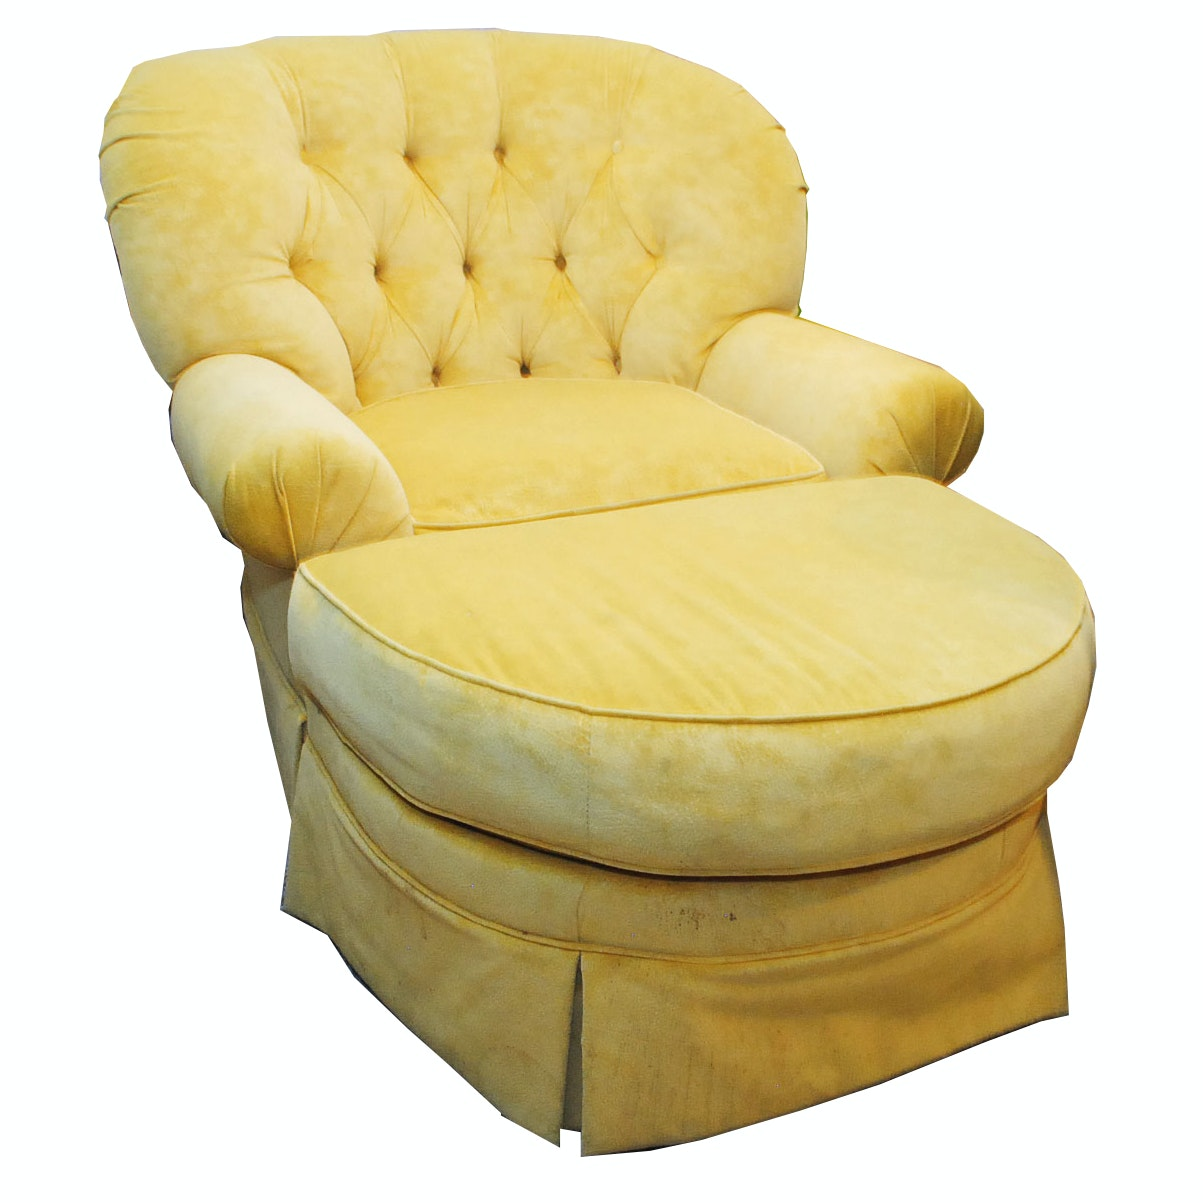 Vintage Upholstered Arm Chair and Ottoman